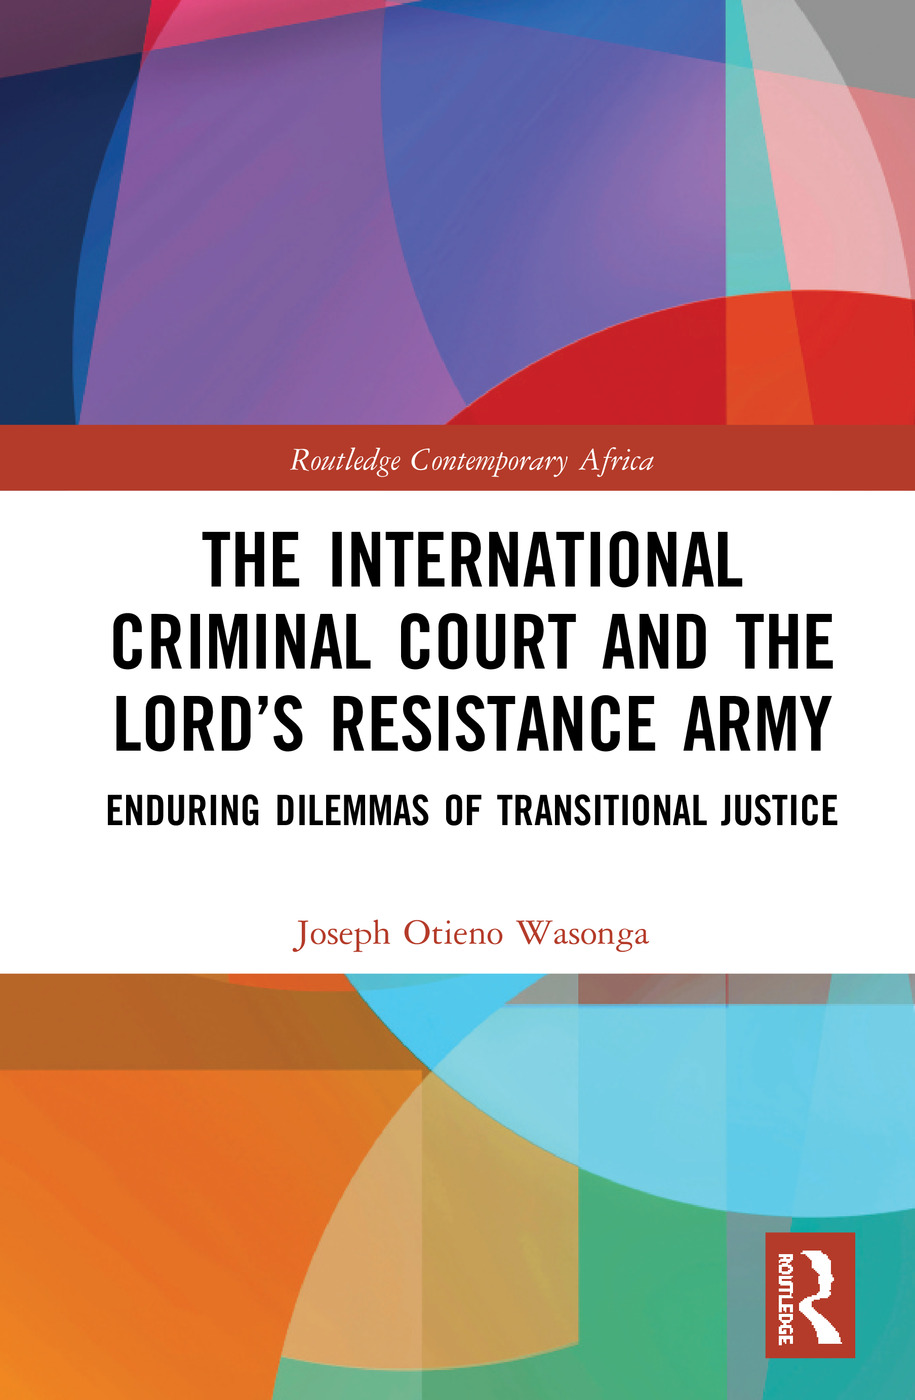 The International Criminal Court and the Lord's Resistance Army: Enduring Dilemmas of Transitional Justice book cover